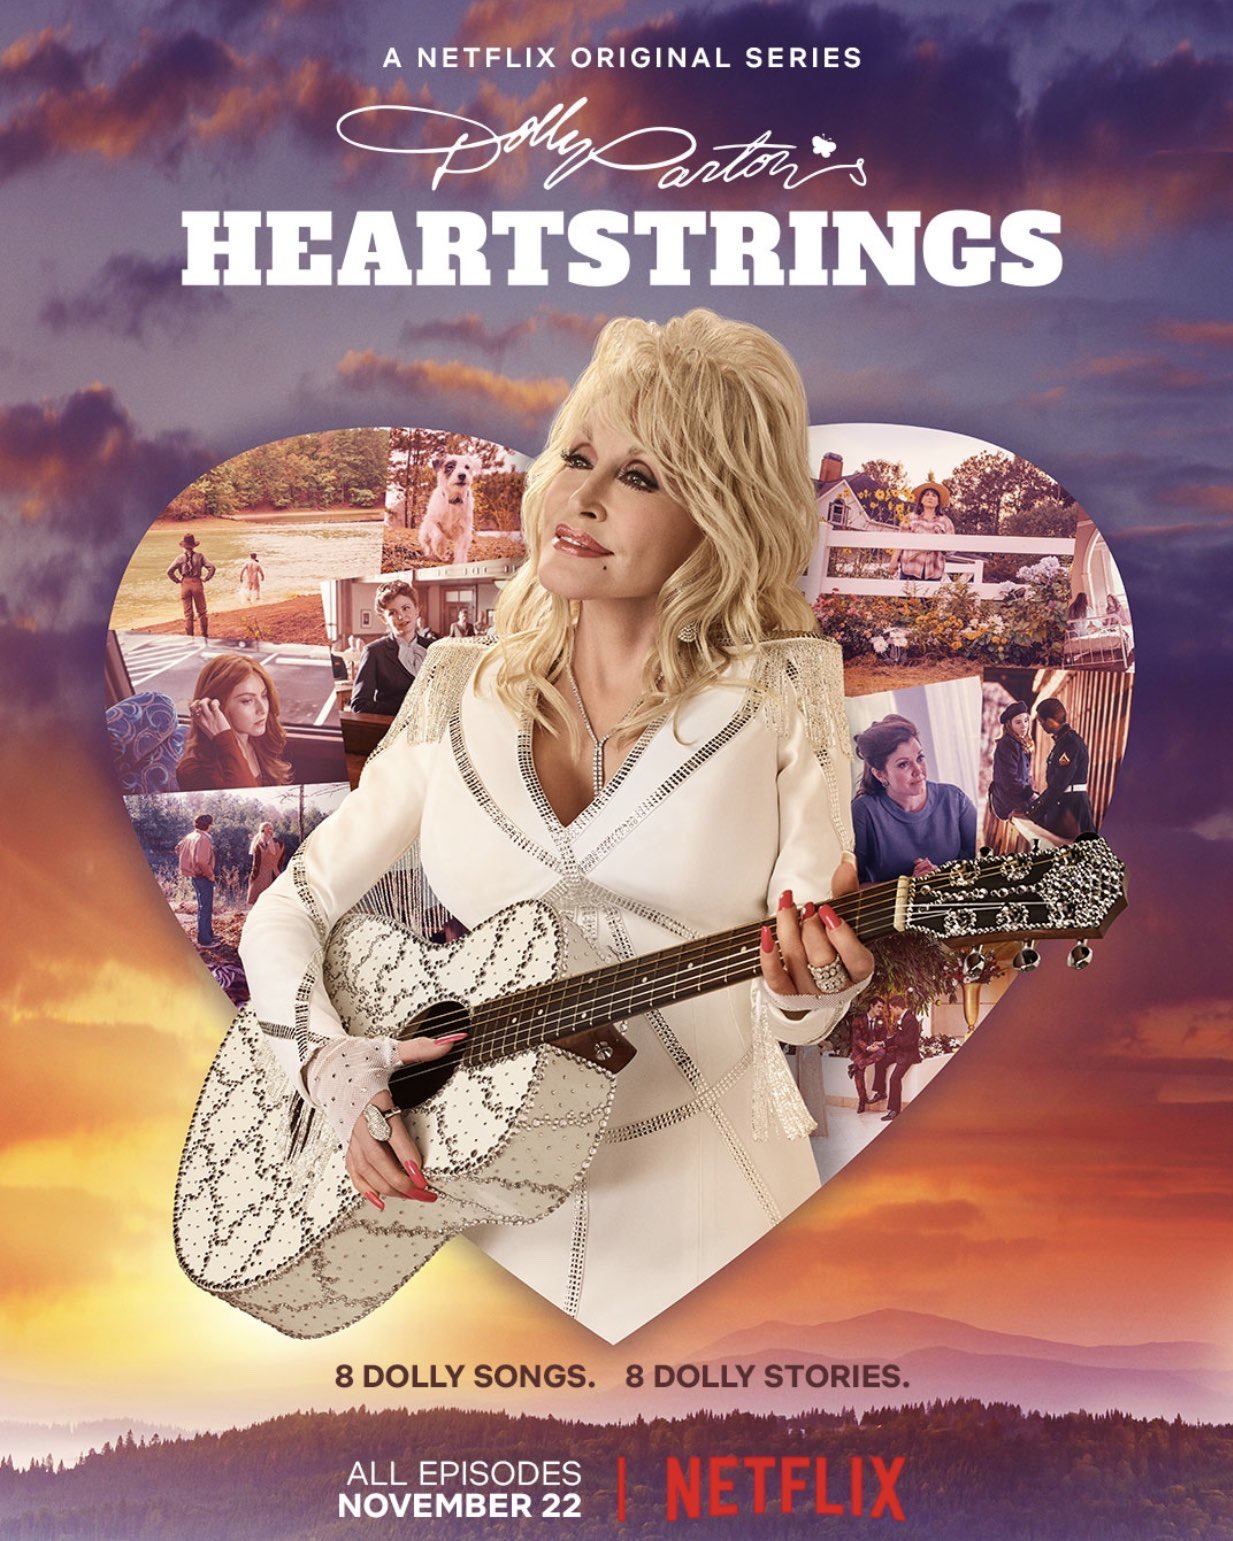 Dolly Parton's Heartstrings - Poster.jpeg